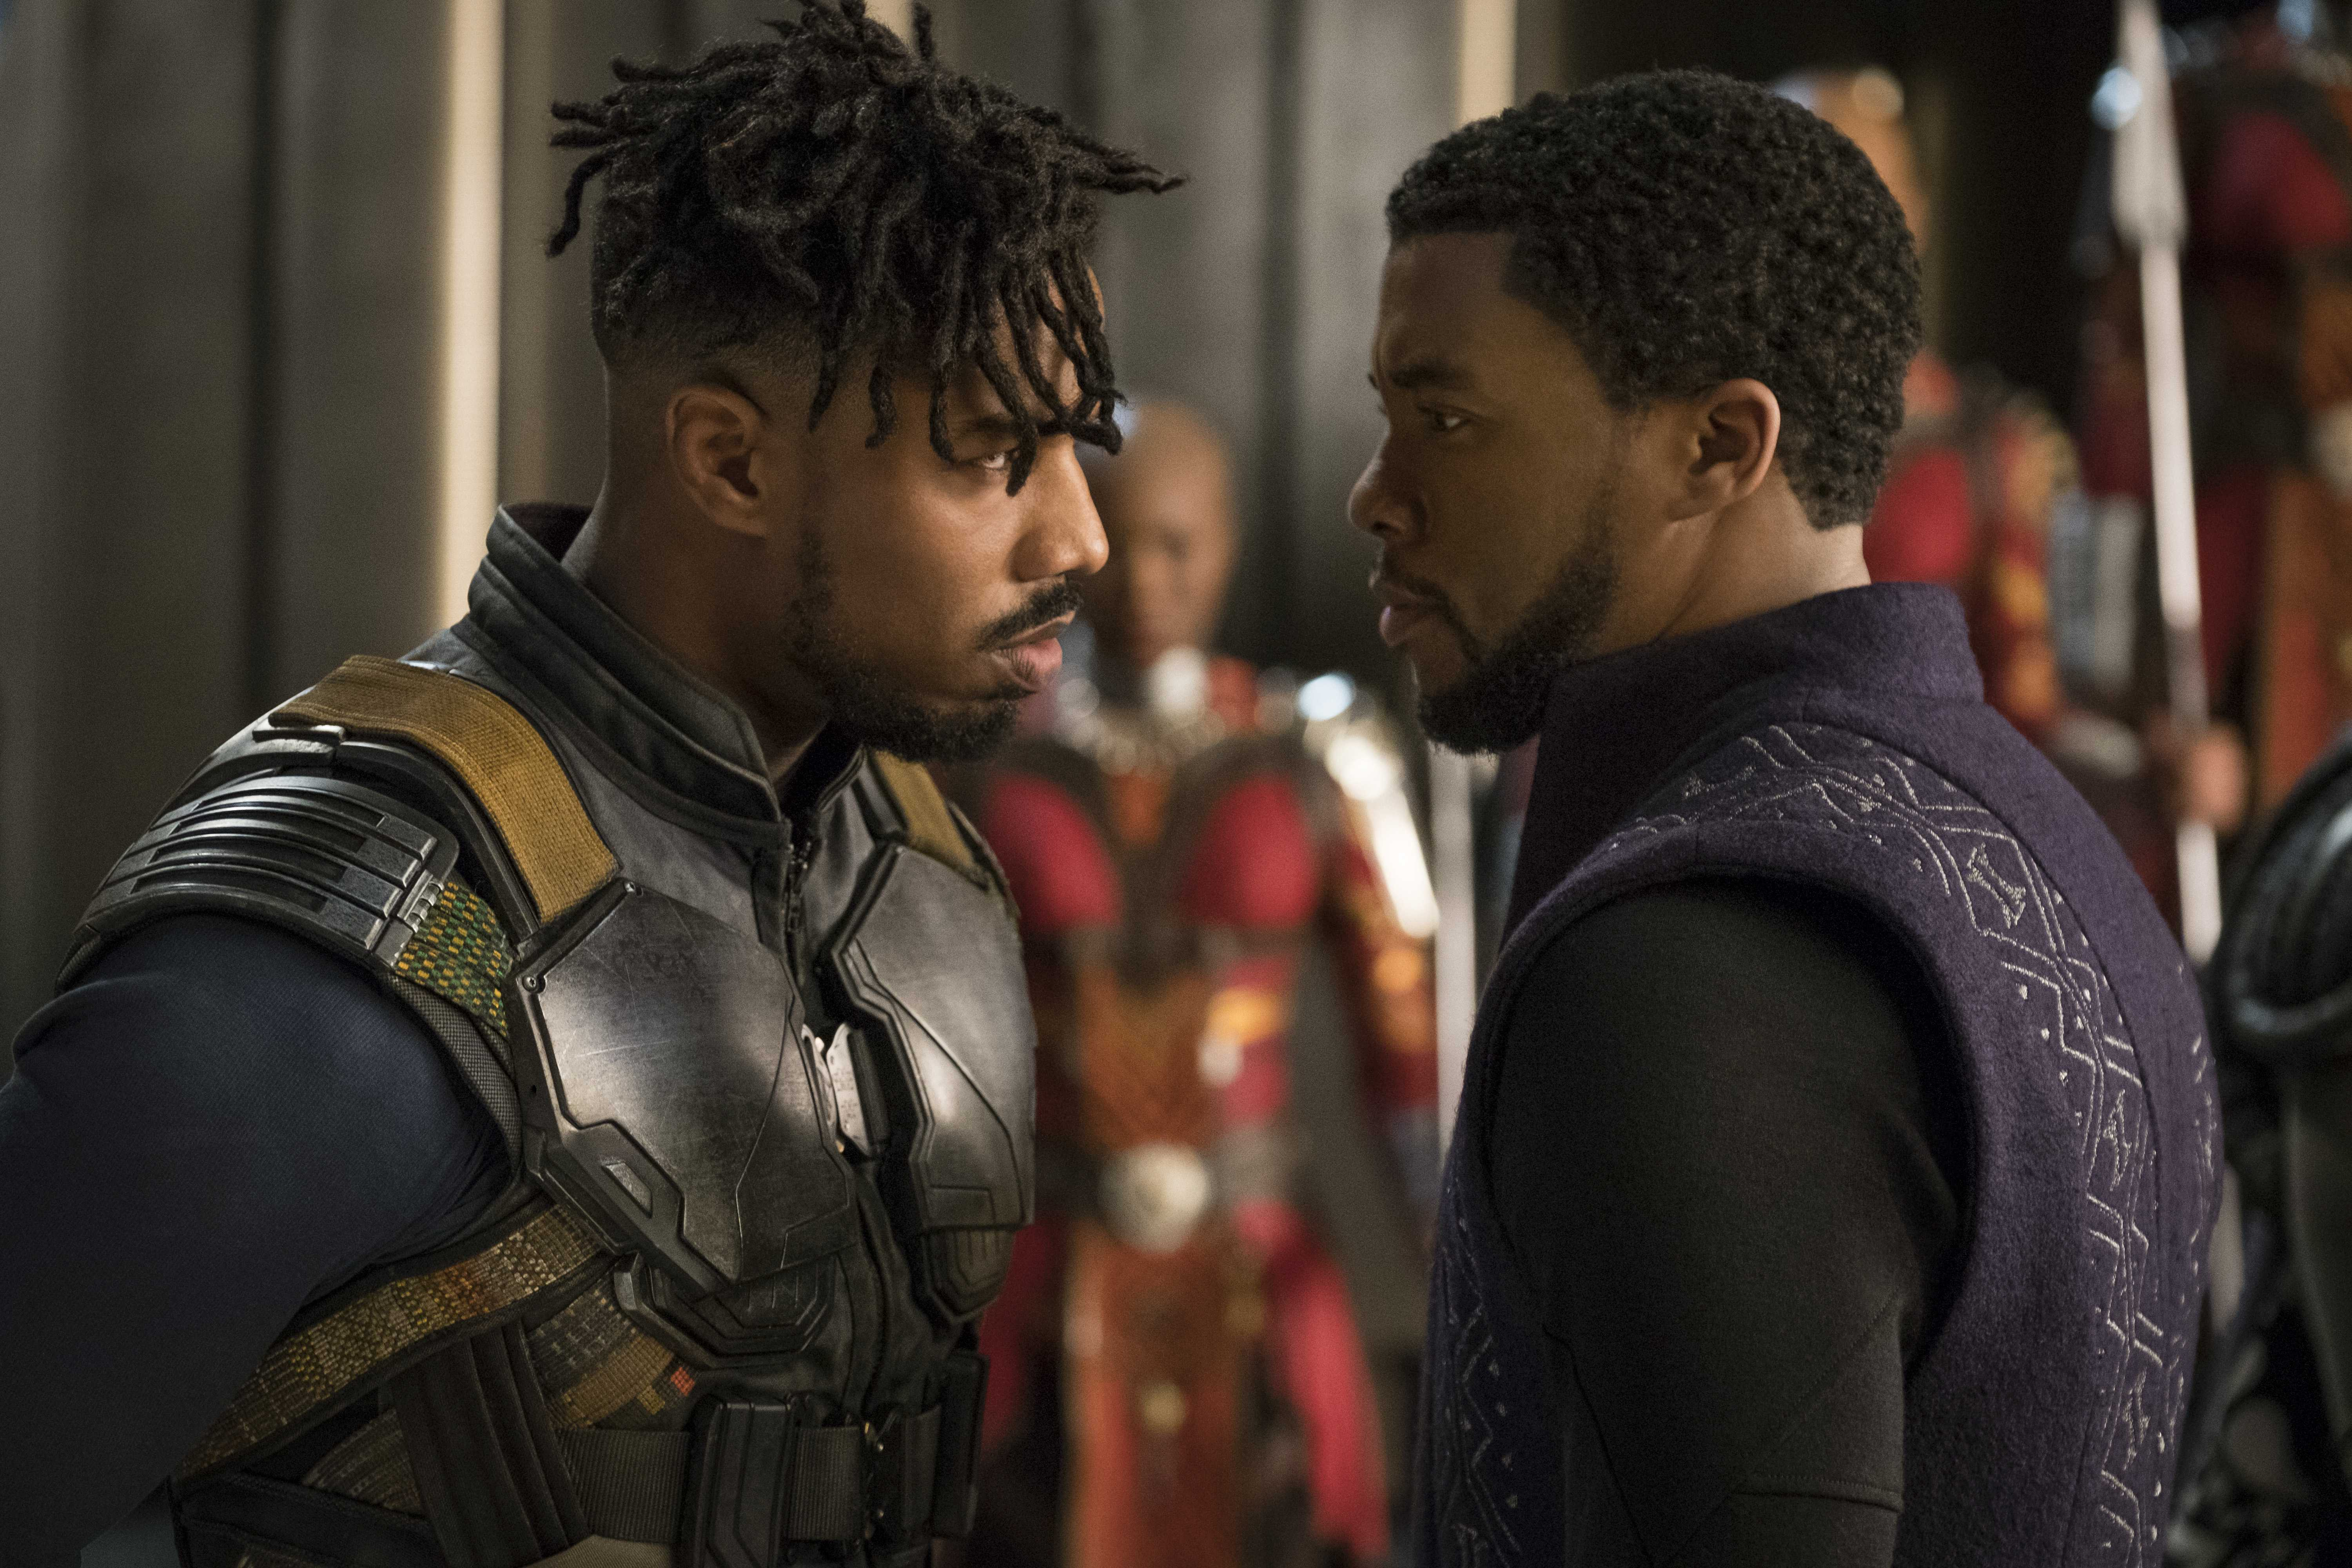 Eric Killmonger (Michael B. Jordan) confronts King T'Challa (Chadwick Boseman) for the first time. (photo courtesy of Marvel Studios)